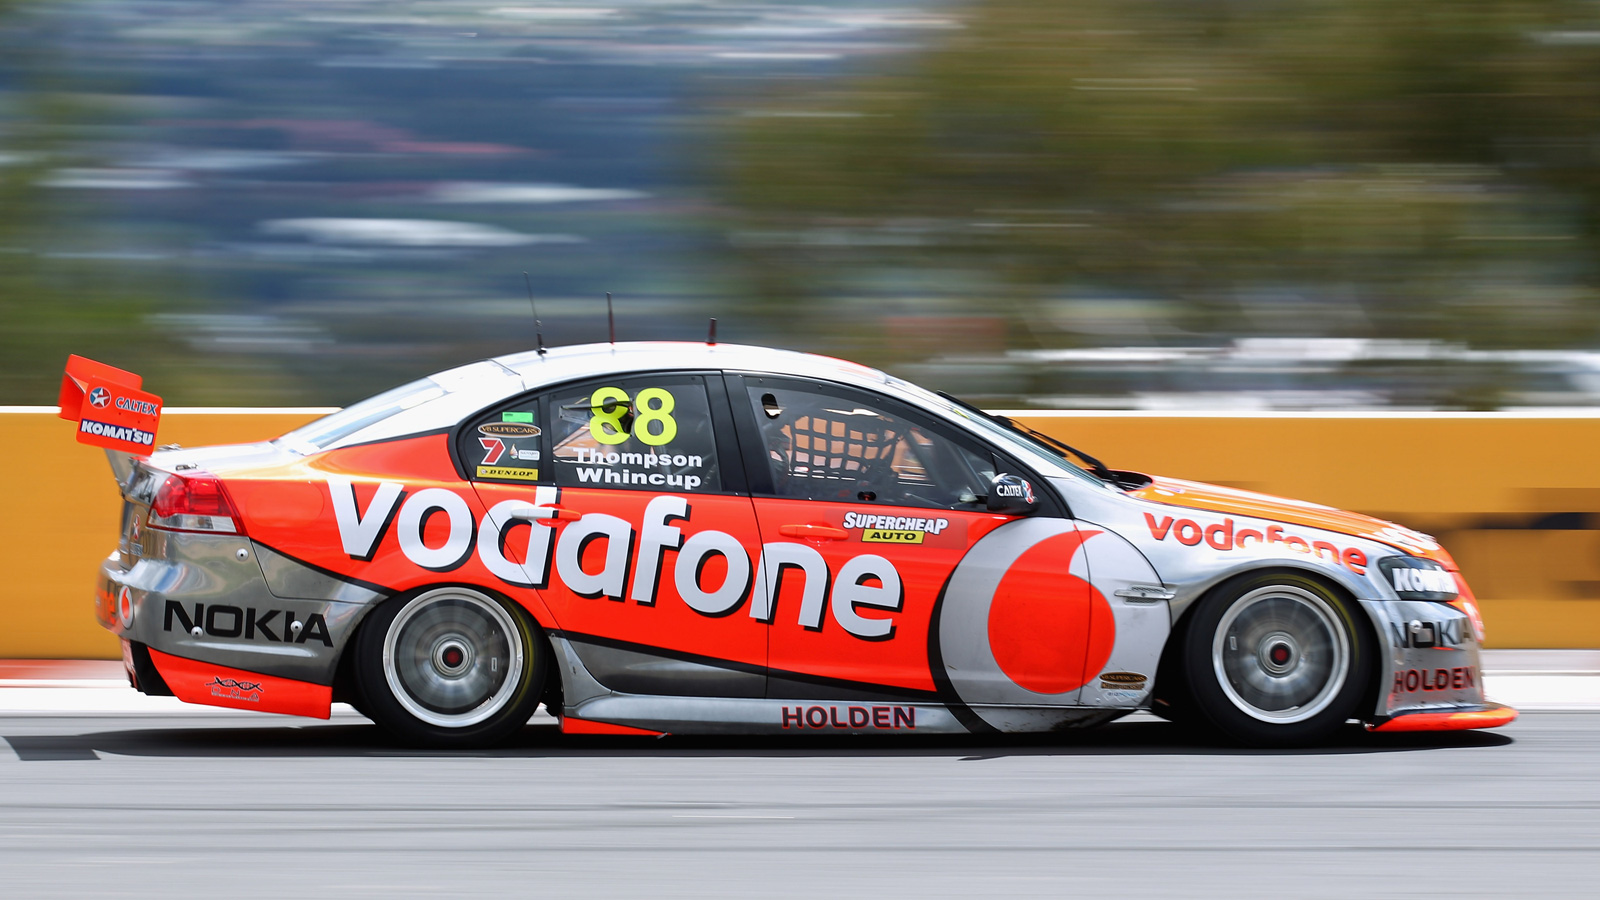 Your ridiculously cool V8 Supercar wallpaper is here 1600x900